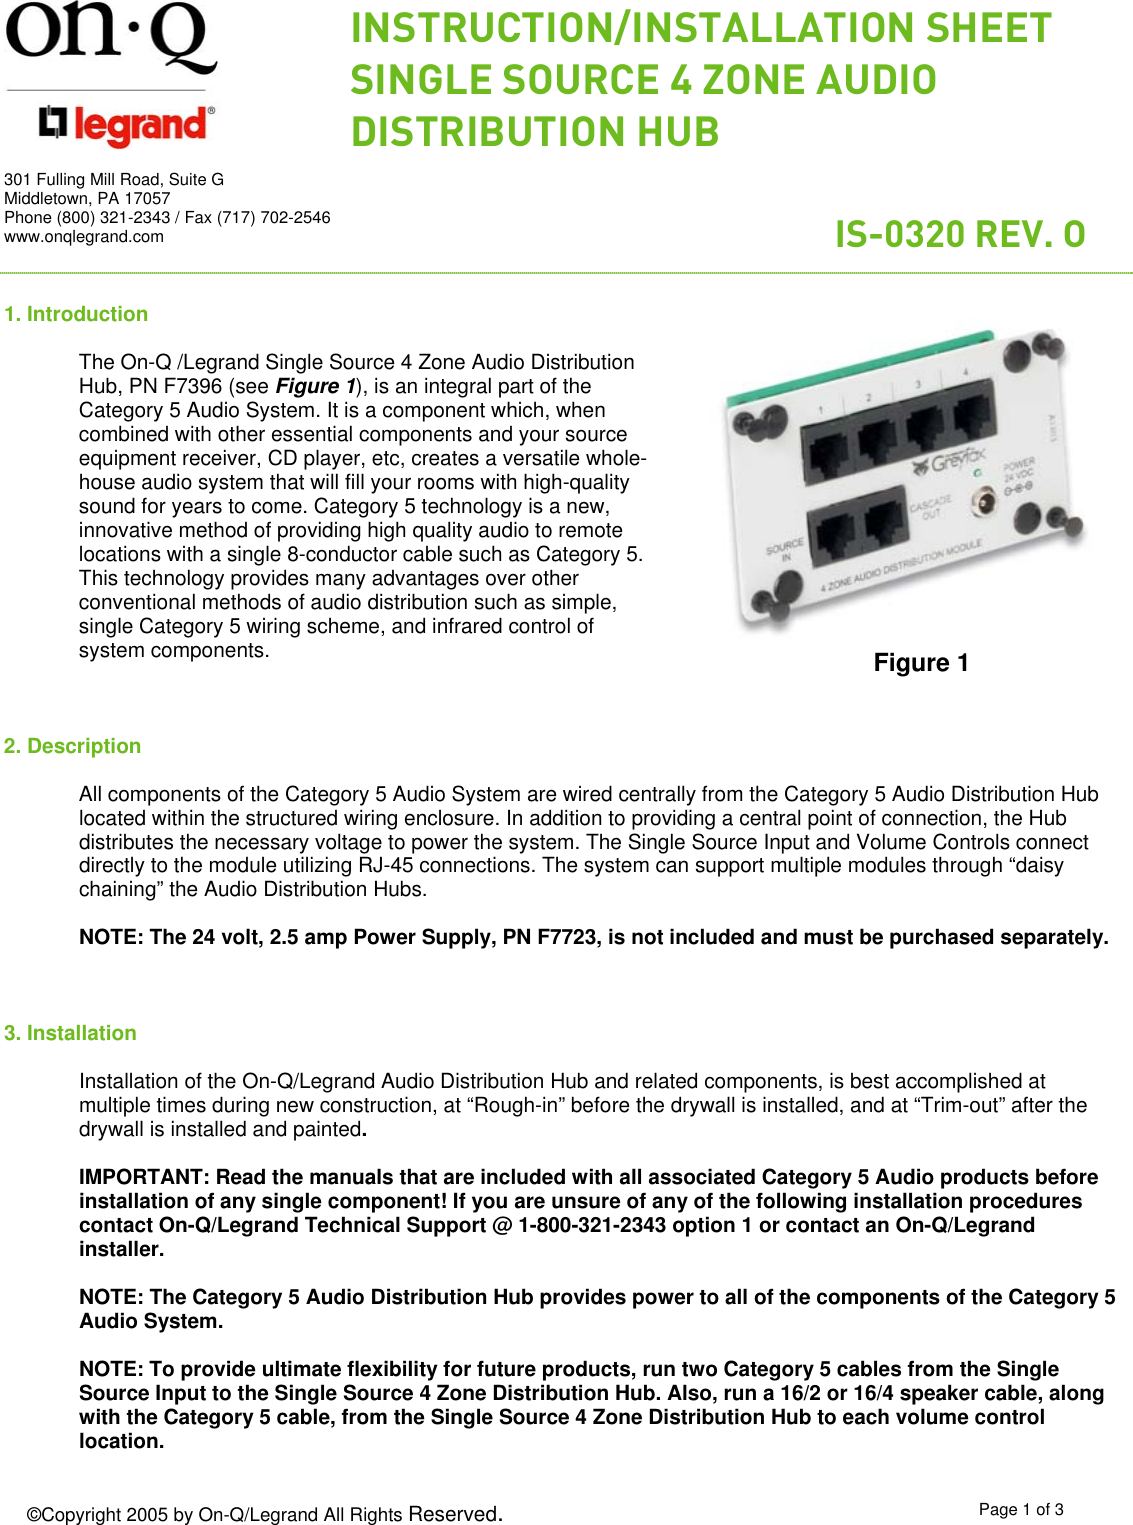 On Q Legrand Switch Is 0320 Rev O Users Manual Structured Wiring Enclosures